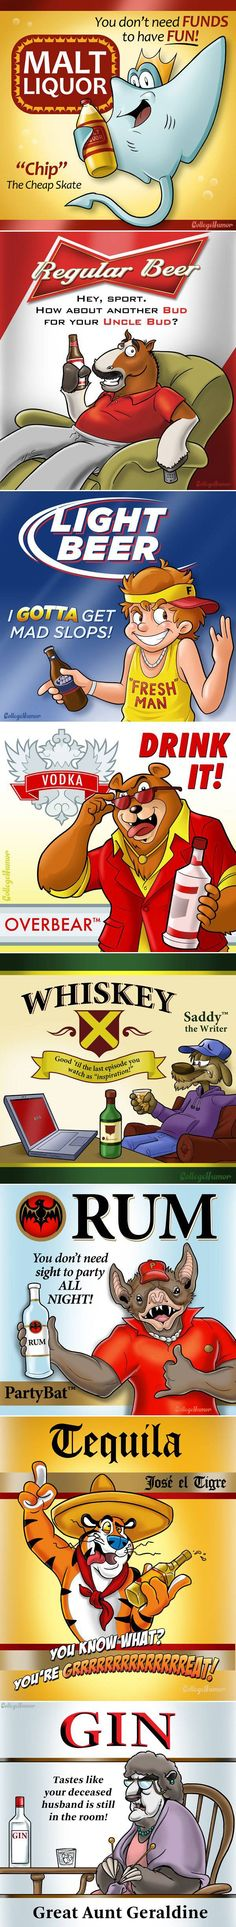 If alcohol had mascots like cereal - Imgur